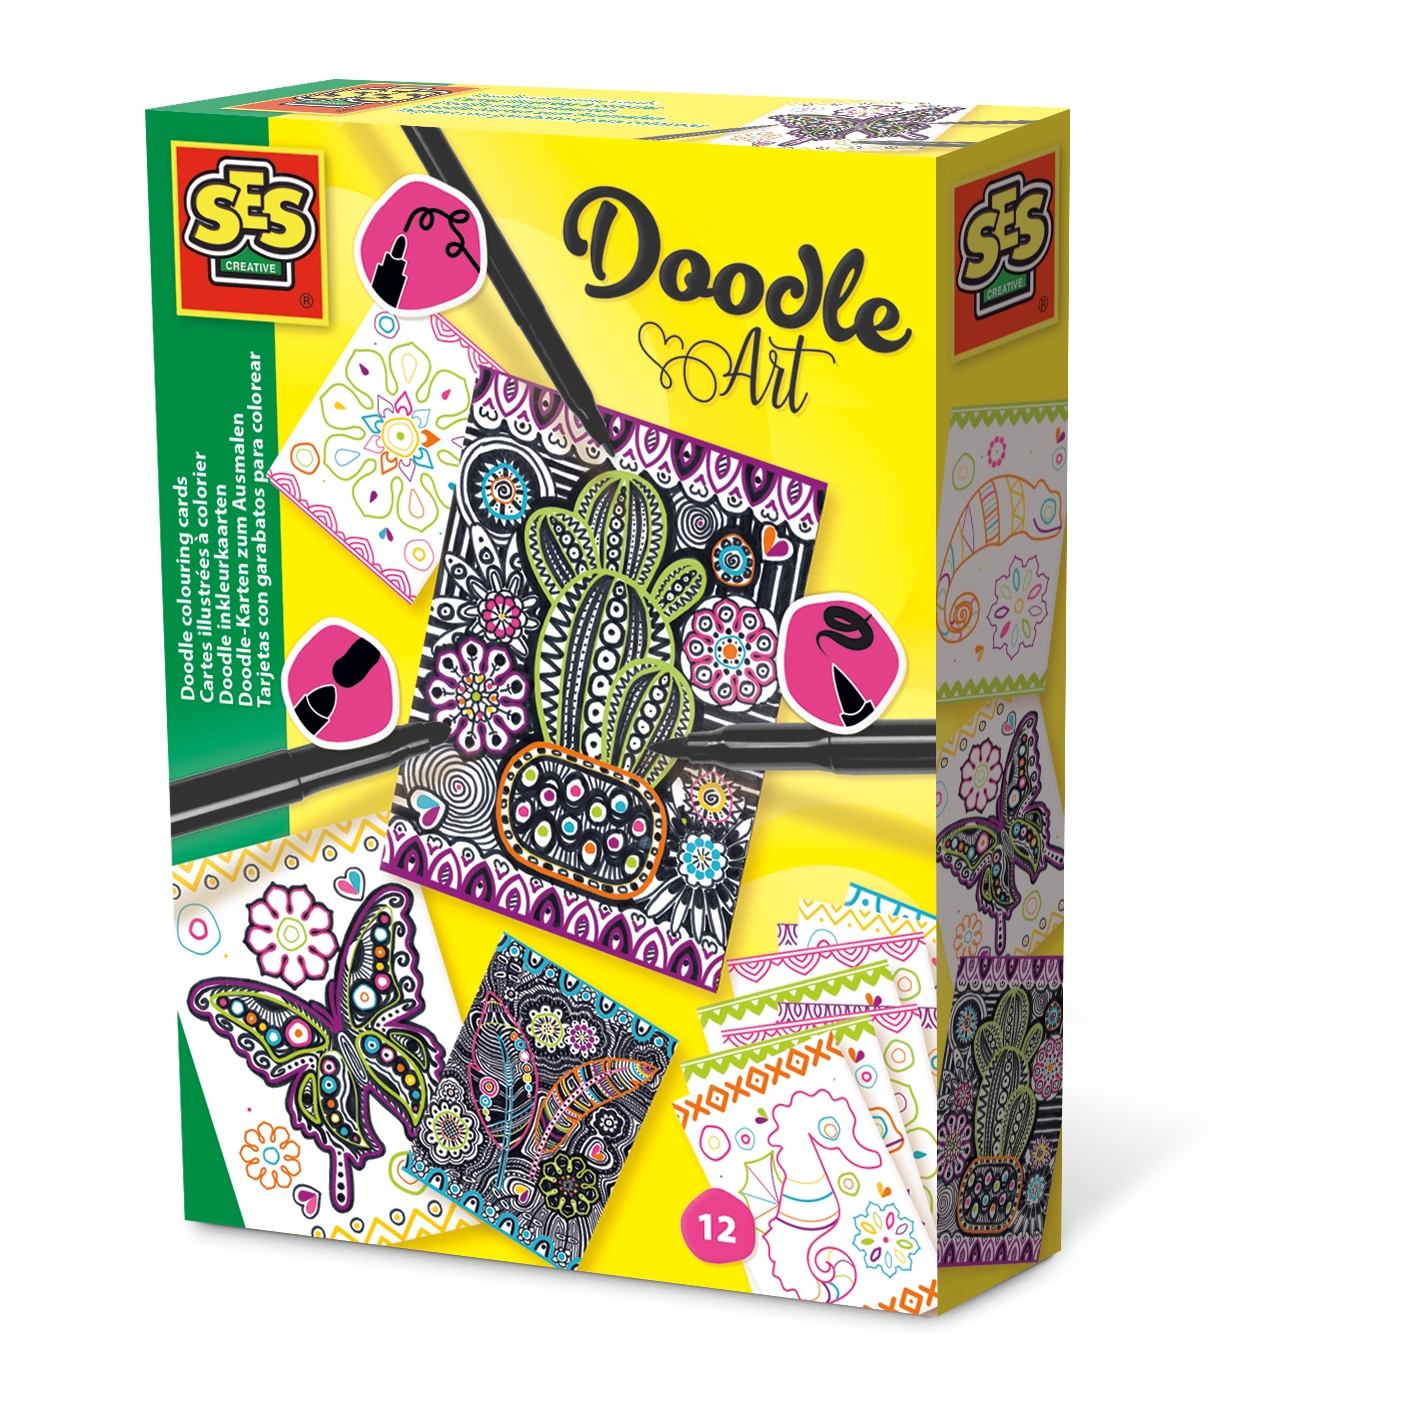 Doodle Coloring Cards